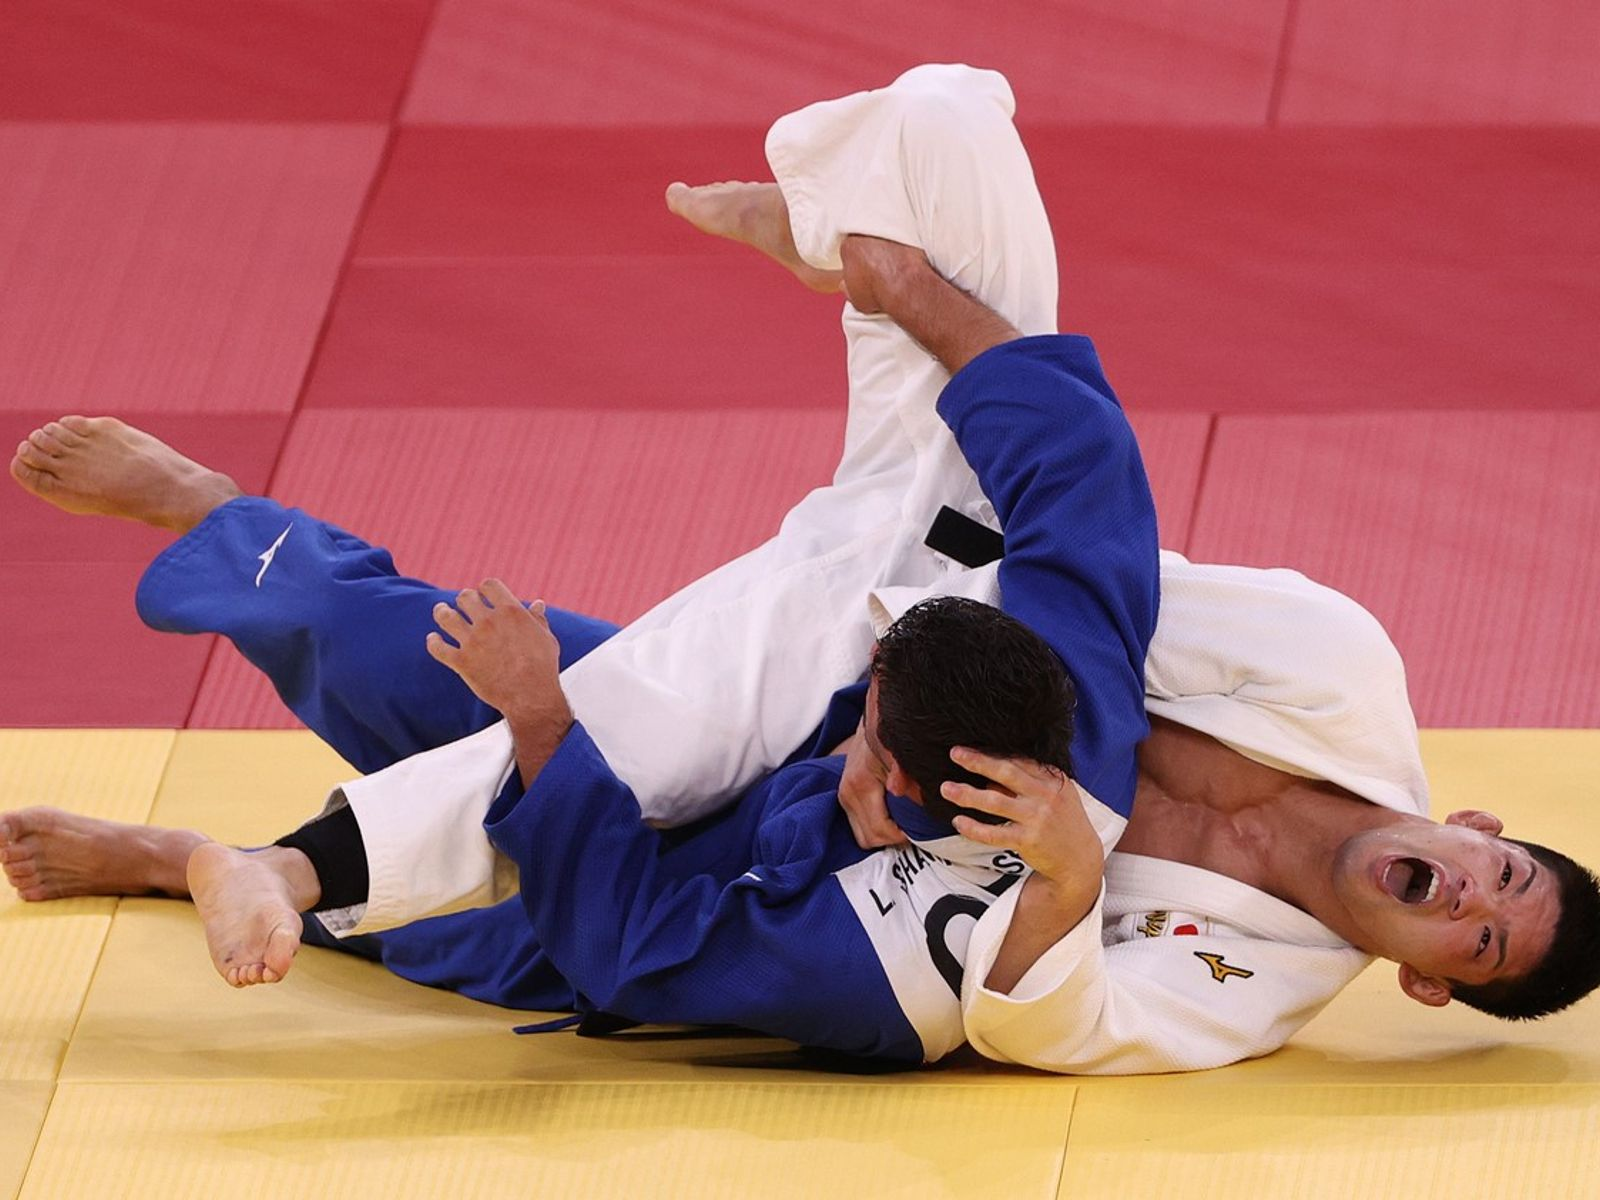 73kg級決勝、延長戦の末にシャブダツアシビリを下した大野将平(写真/GettyImages)